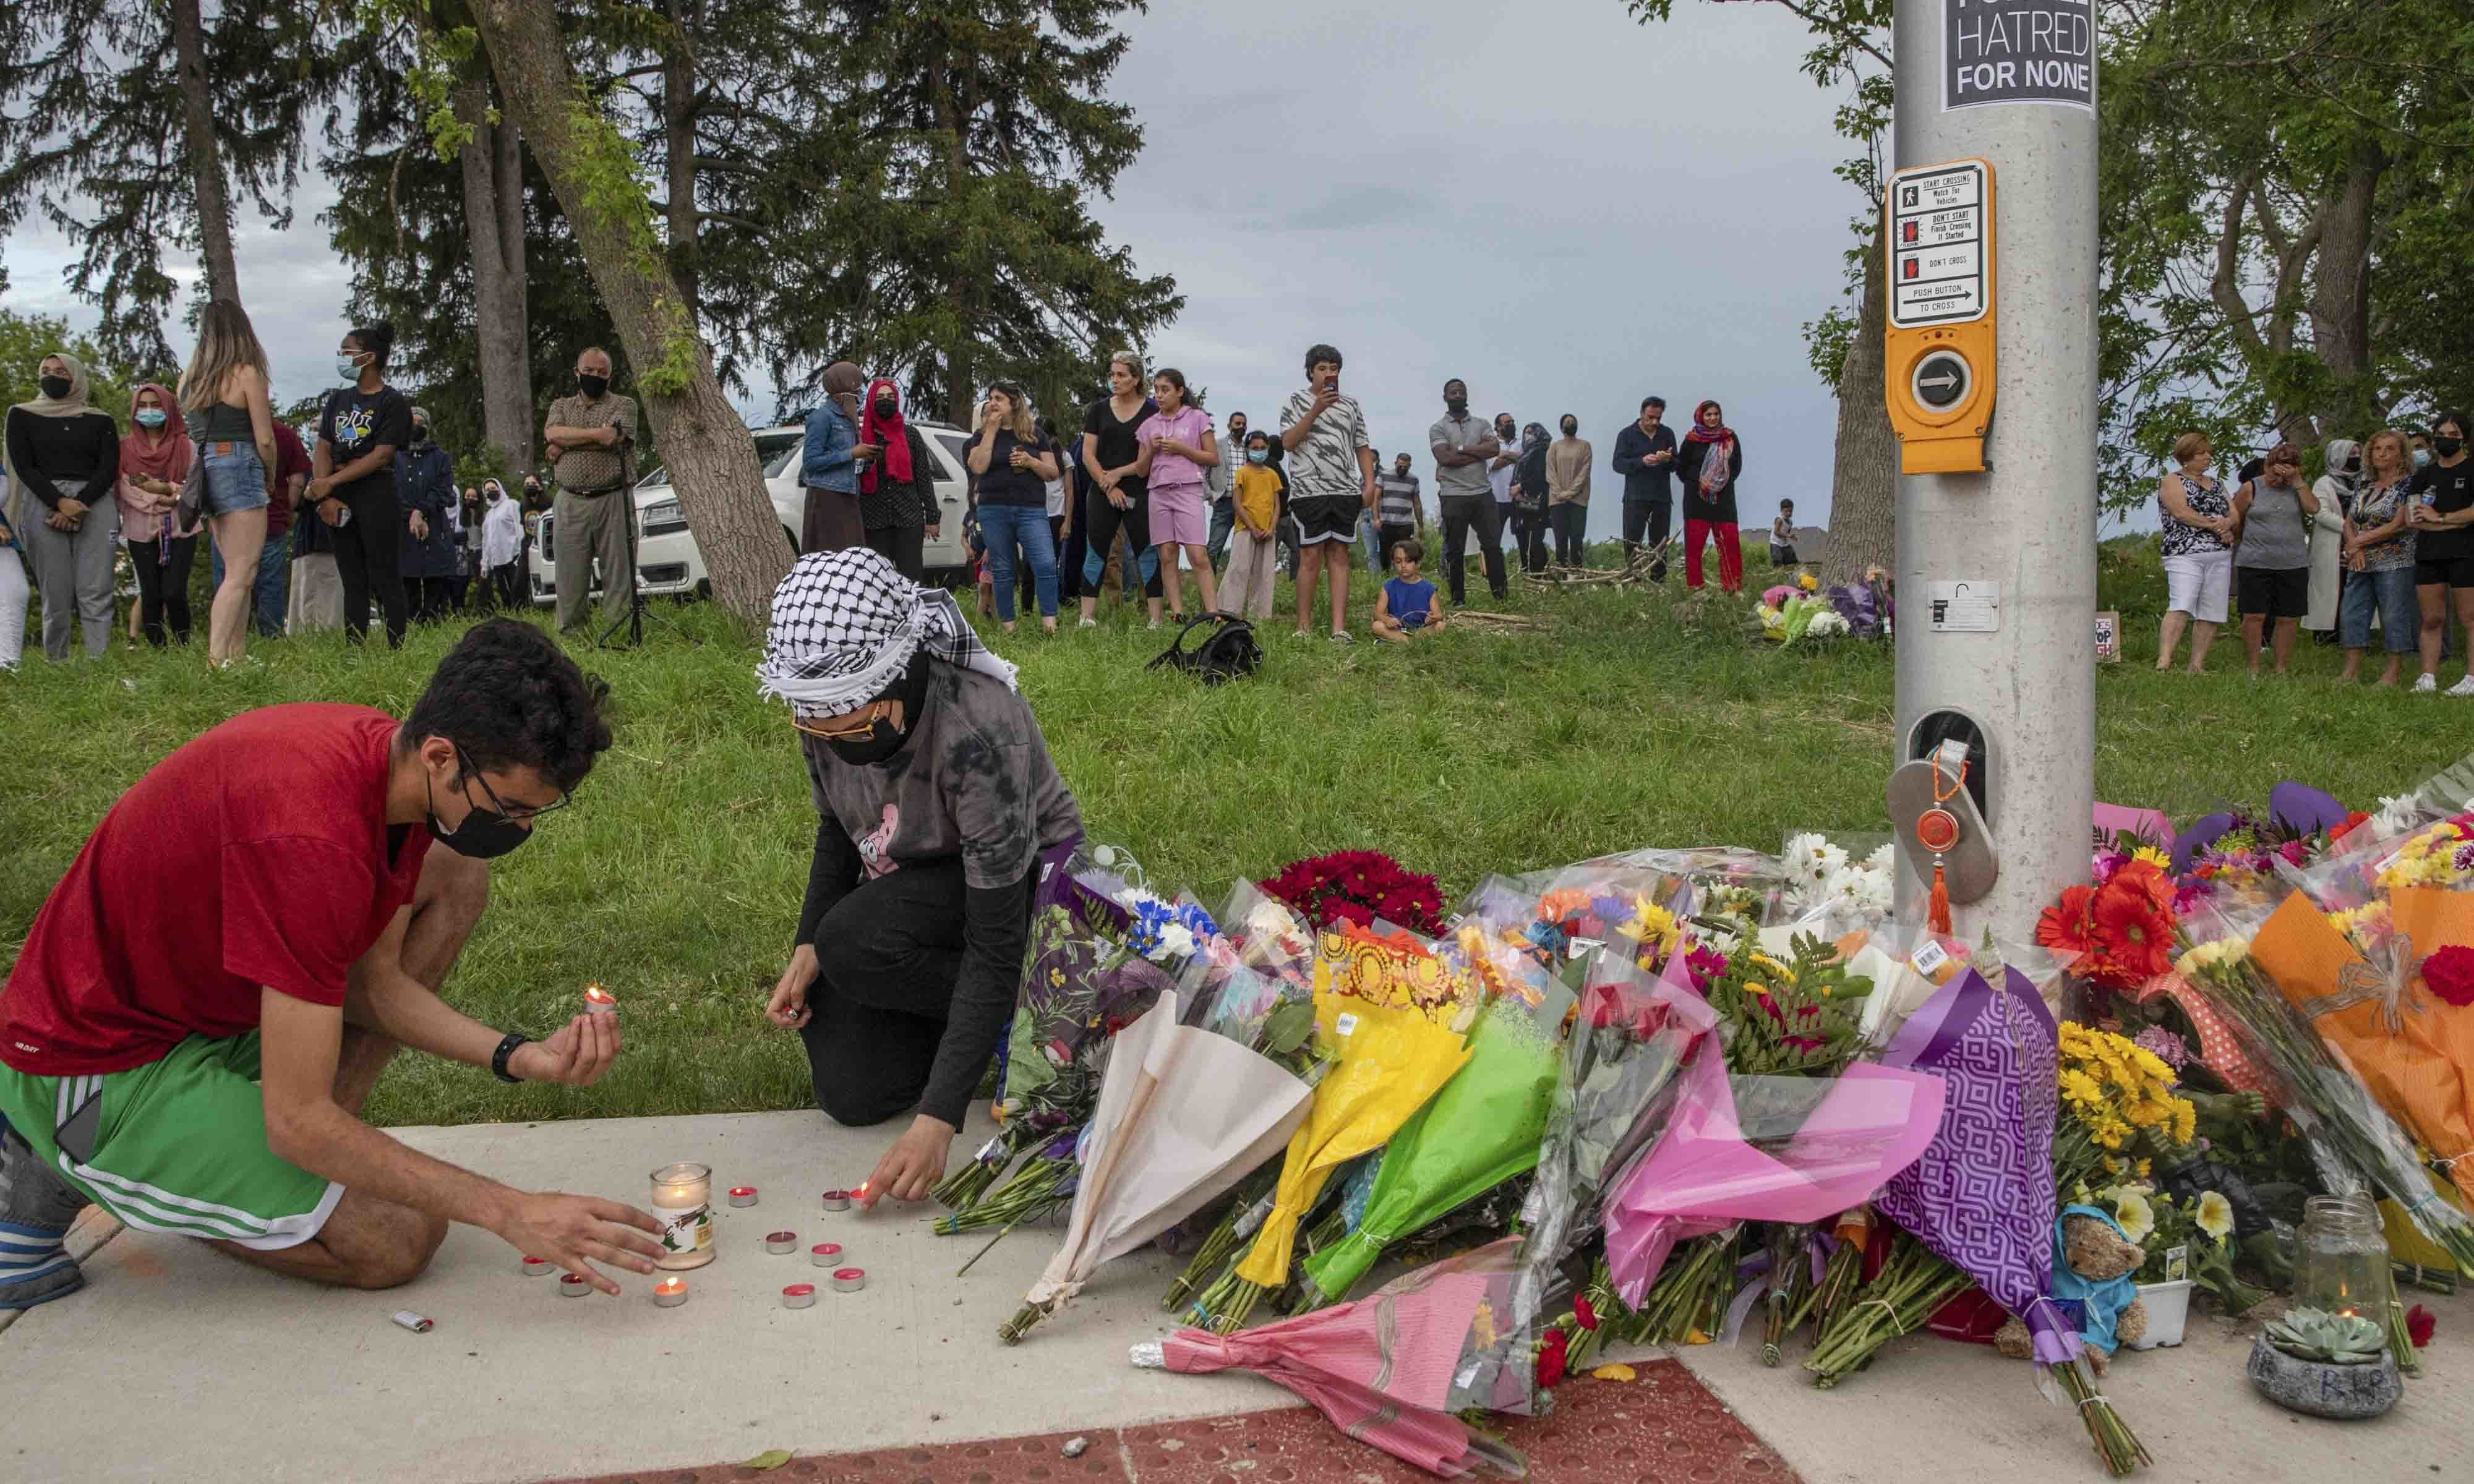 Abood, 18, left, and his sister Zeina Abdulhadi, 15, attend a memorial at the location where a family of five was hit by a driver, in London, Ontario. — AP